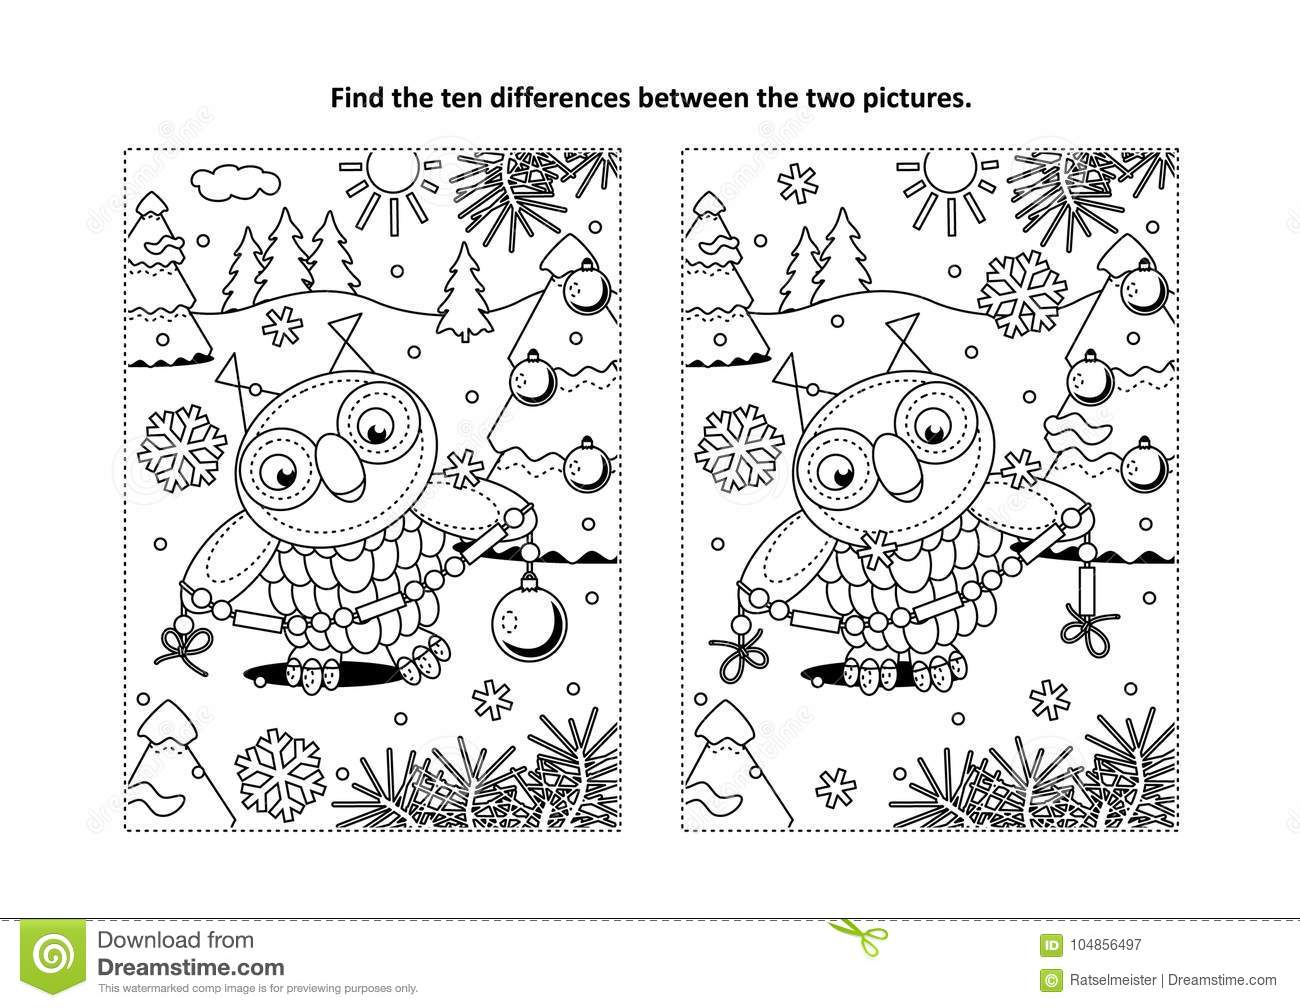 Winter Holidays New Year Or Christmas Themed Find The Ten Differences Picture Puzzle And Coloring Page With Owl Holding Glass Beads Garland For Trimming